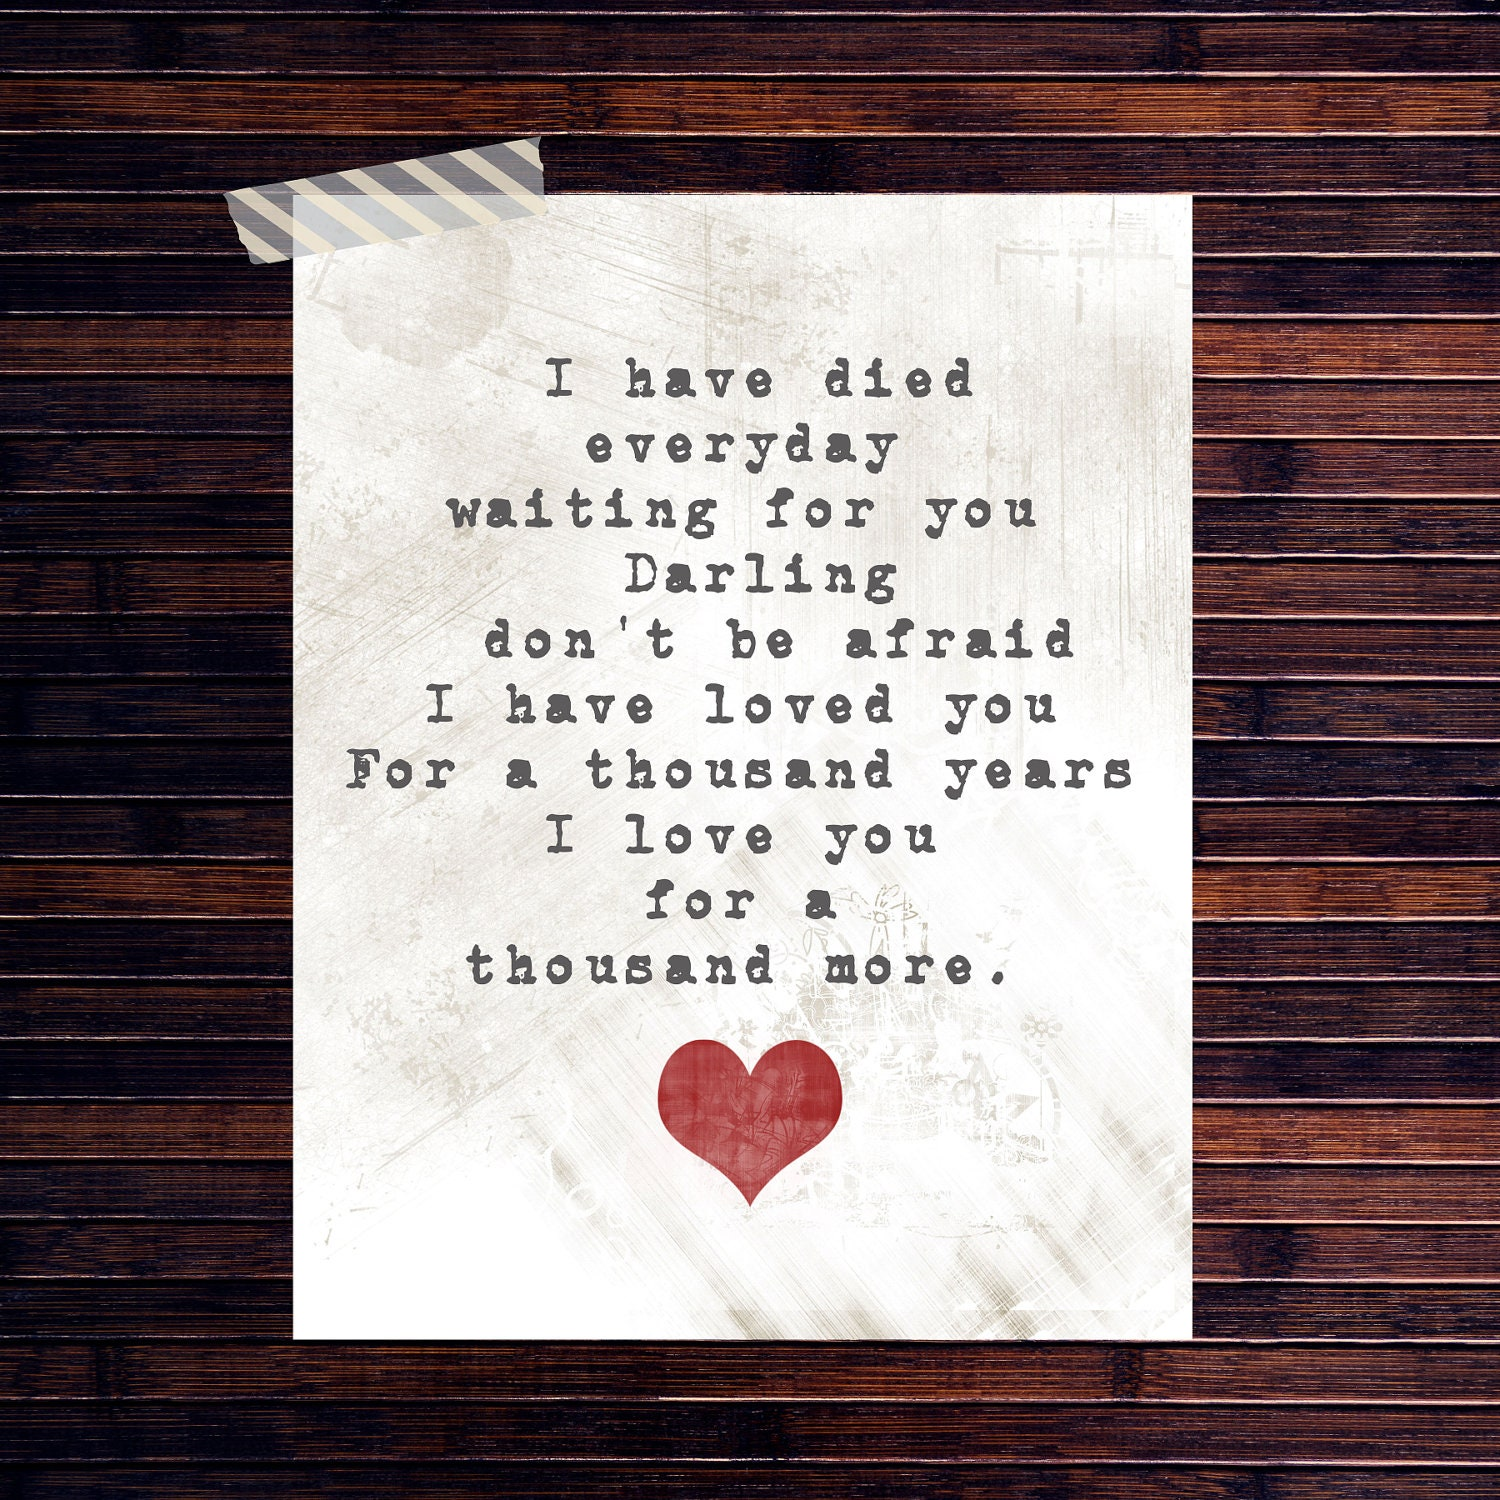 I would die everyday waiting for you lyrics